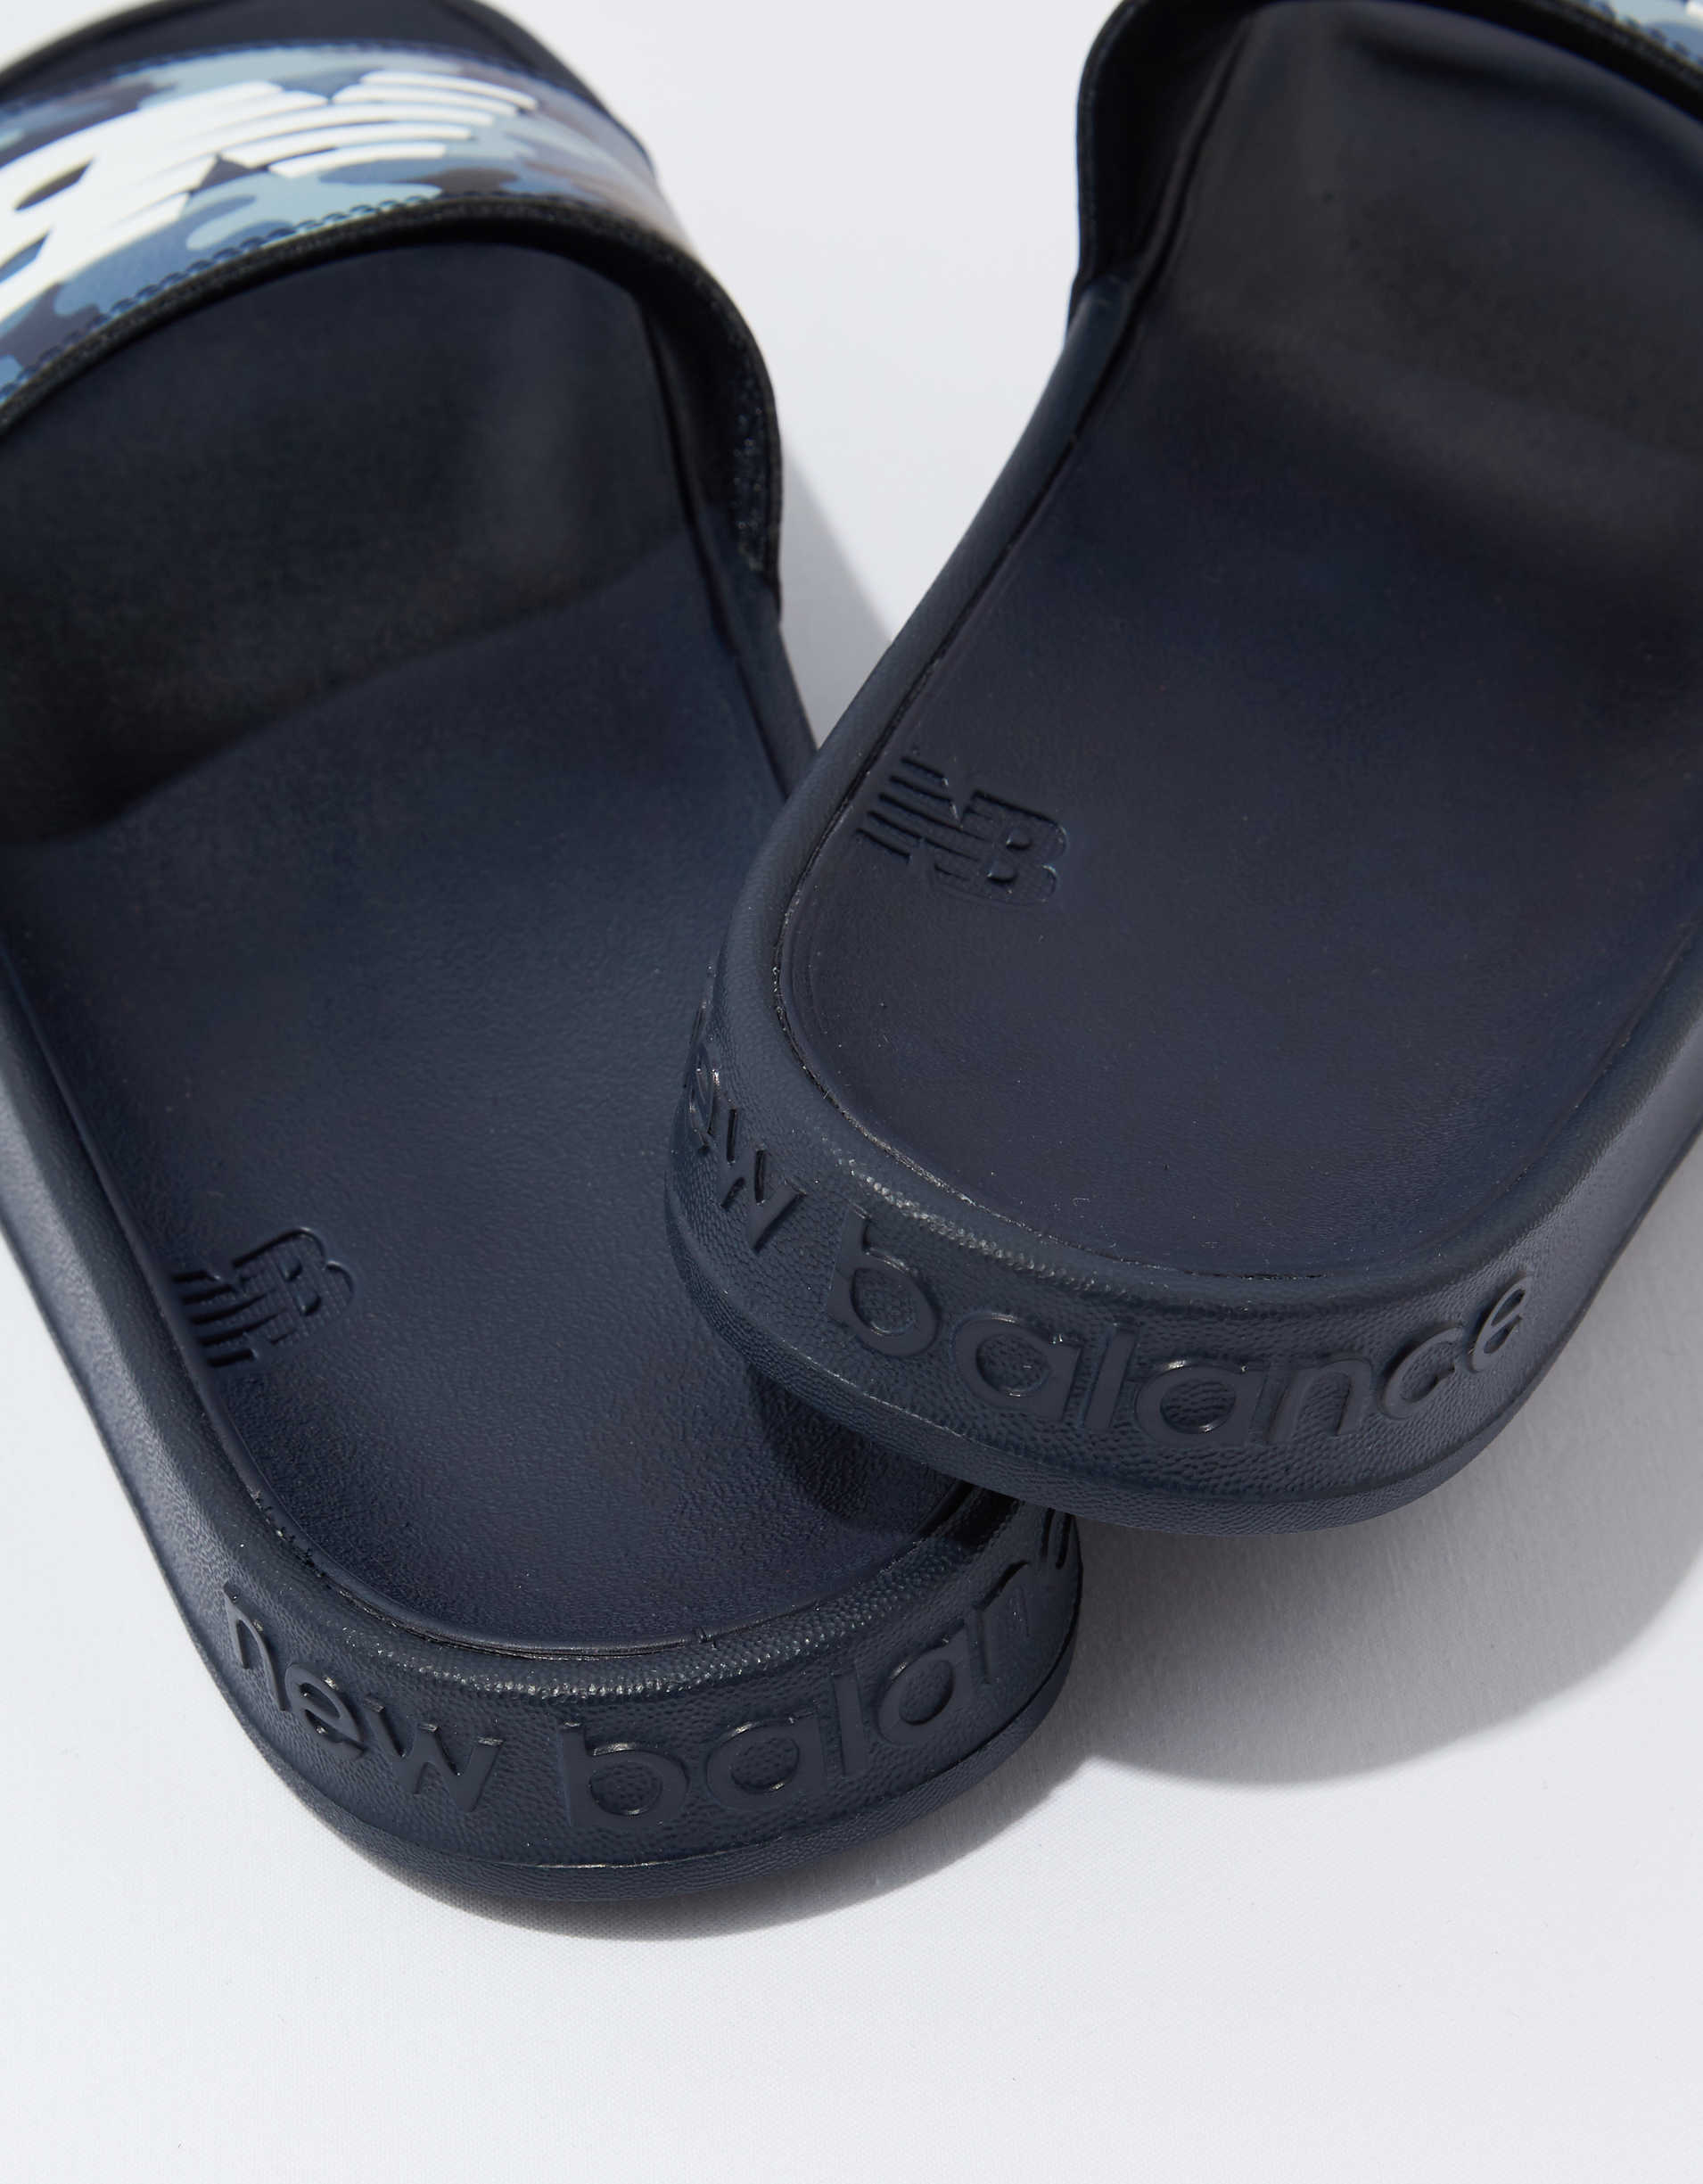 New Balance 200 Slide Sandal